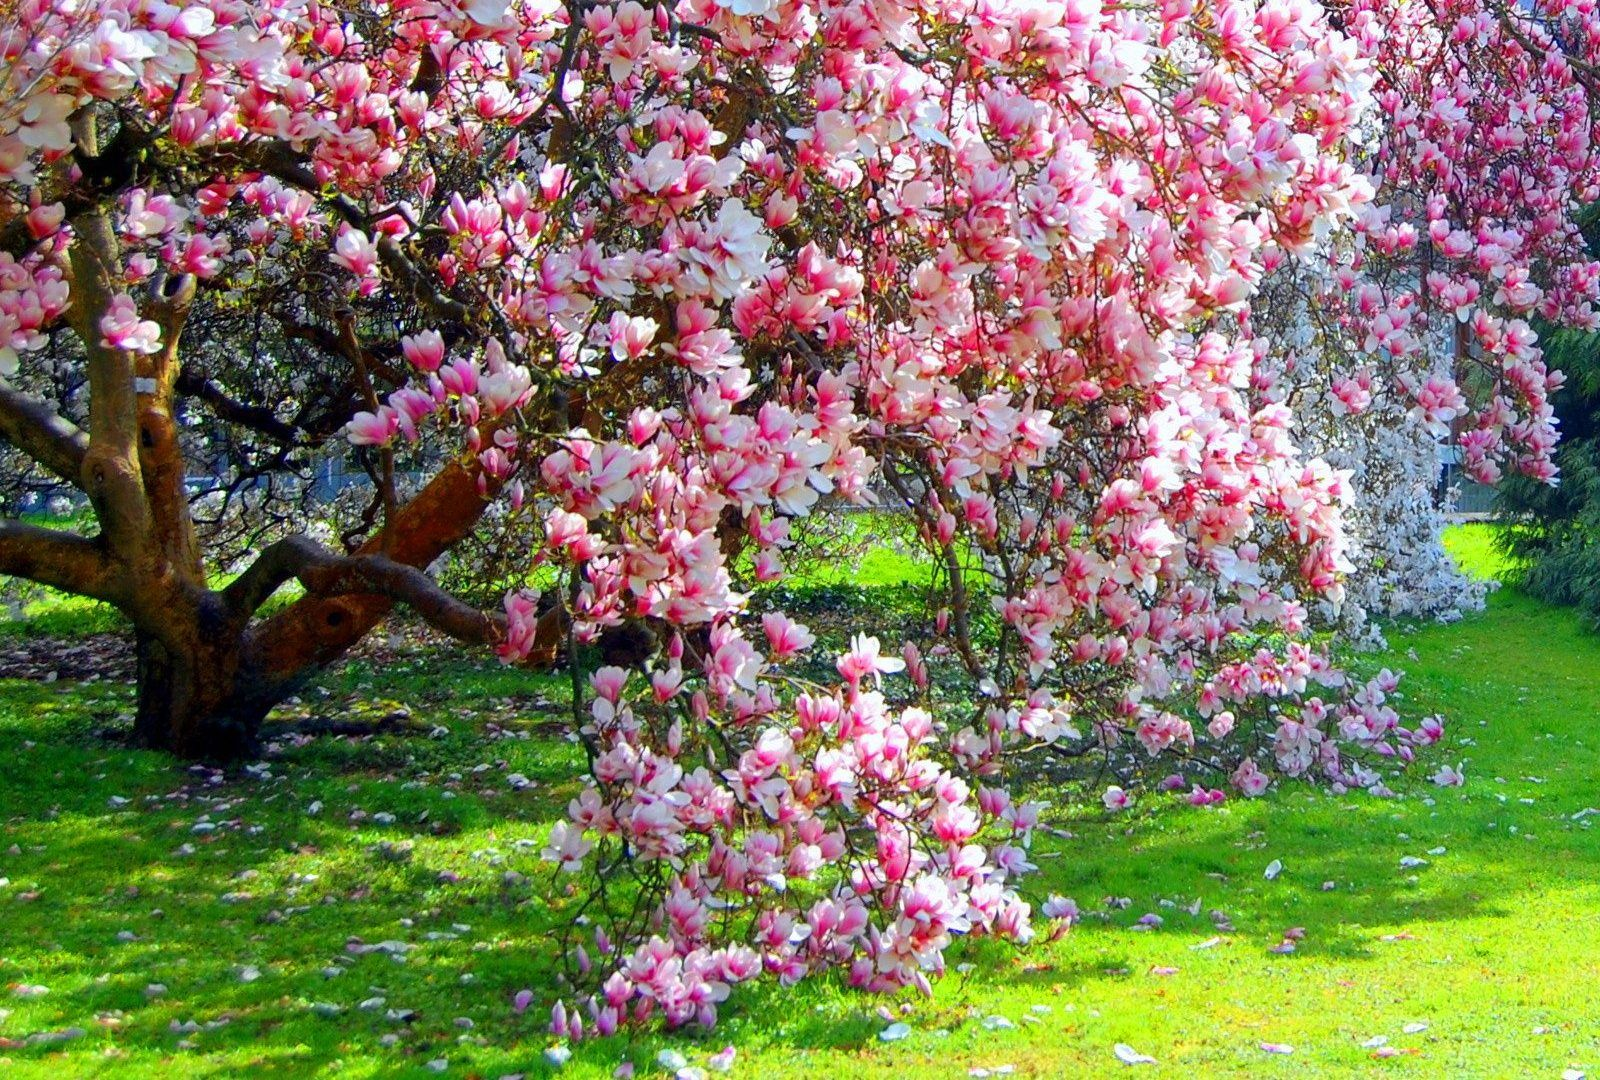 Magnolia tree pink flowering blossoms picture gallery a vszakok magnolia tree pink flowering blossoms picture gallery mightylinksfo